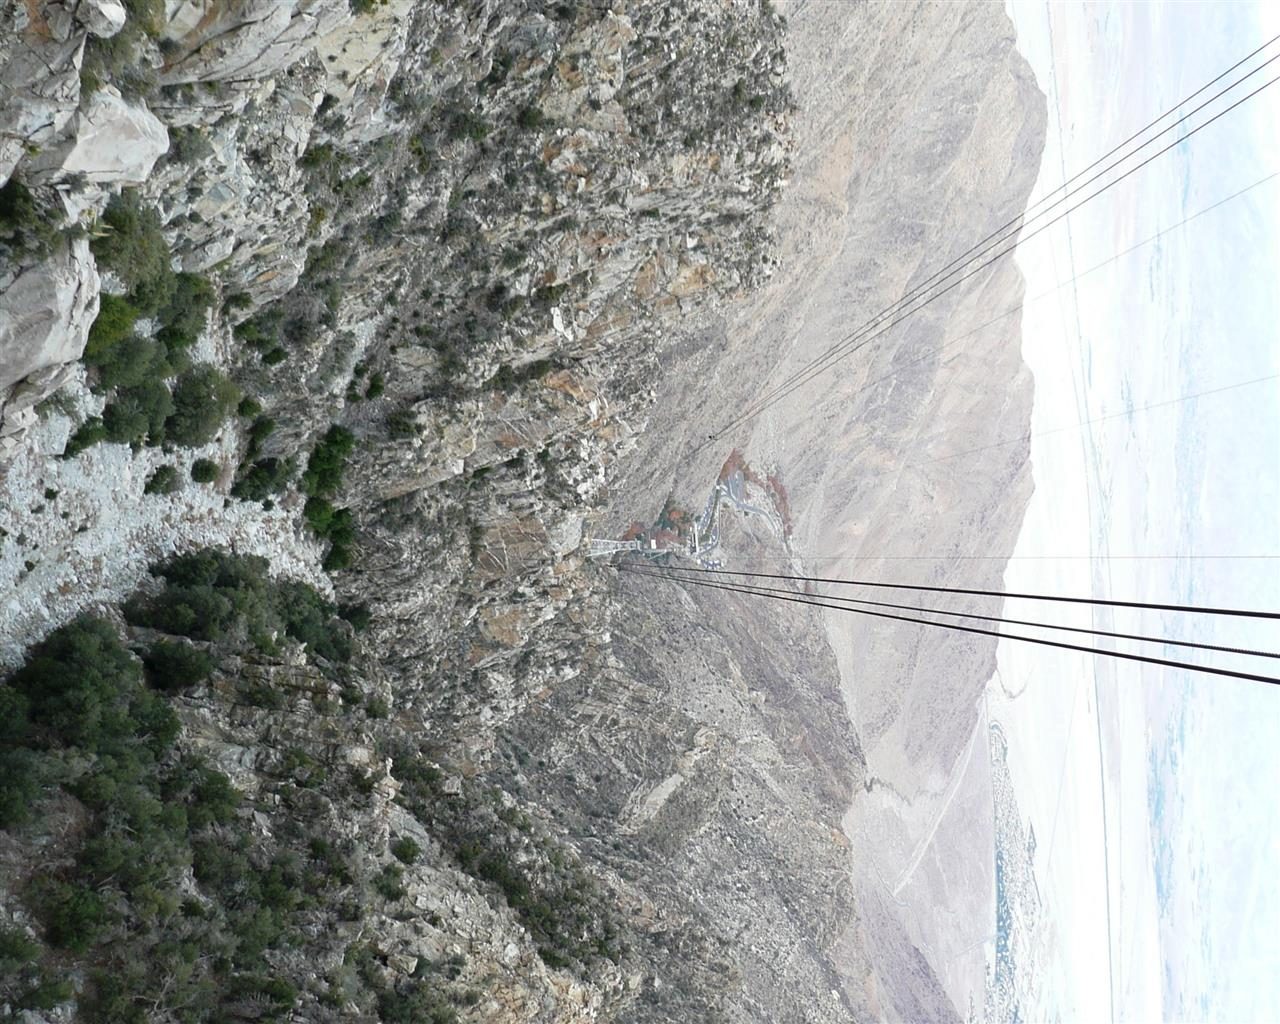 Palm Springs, CA Tram Descent